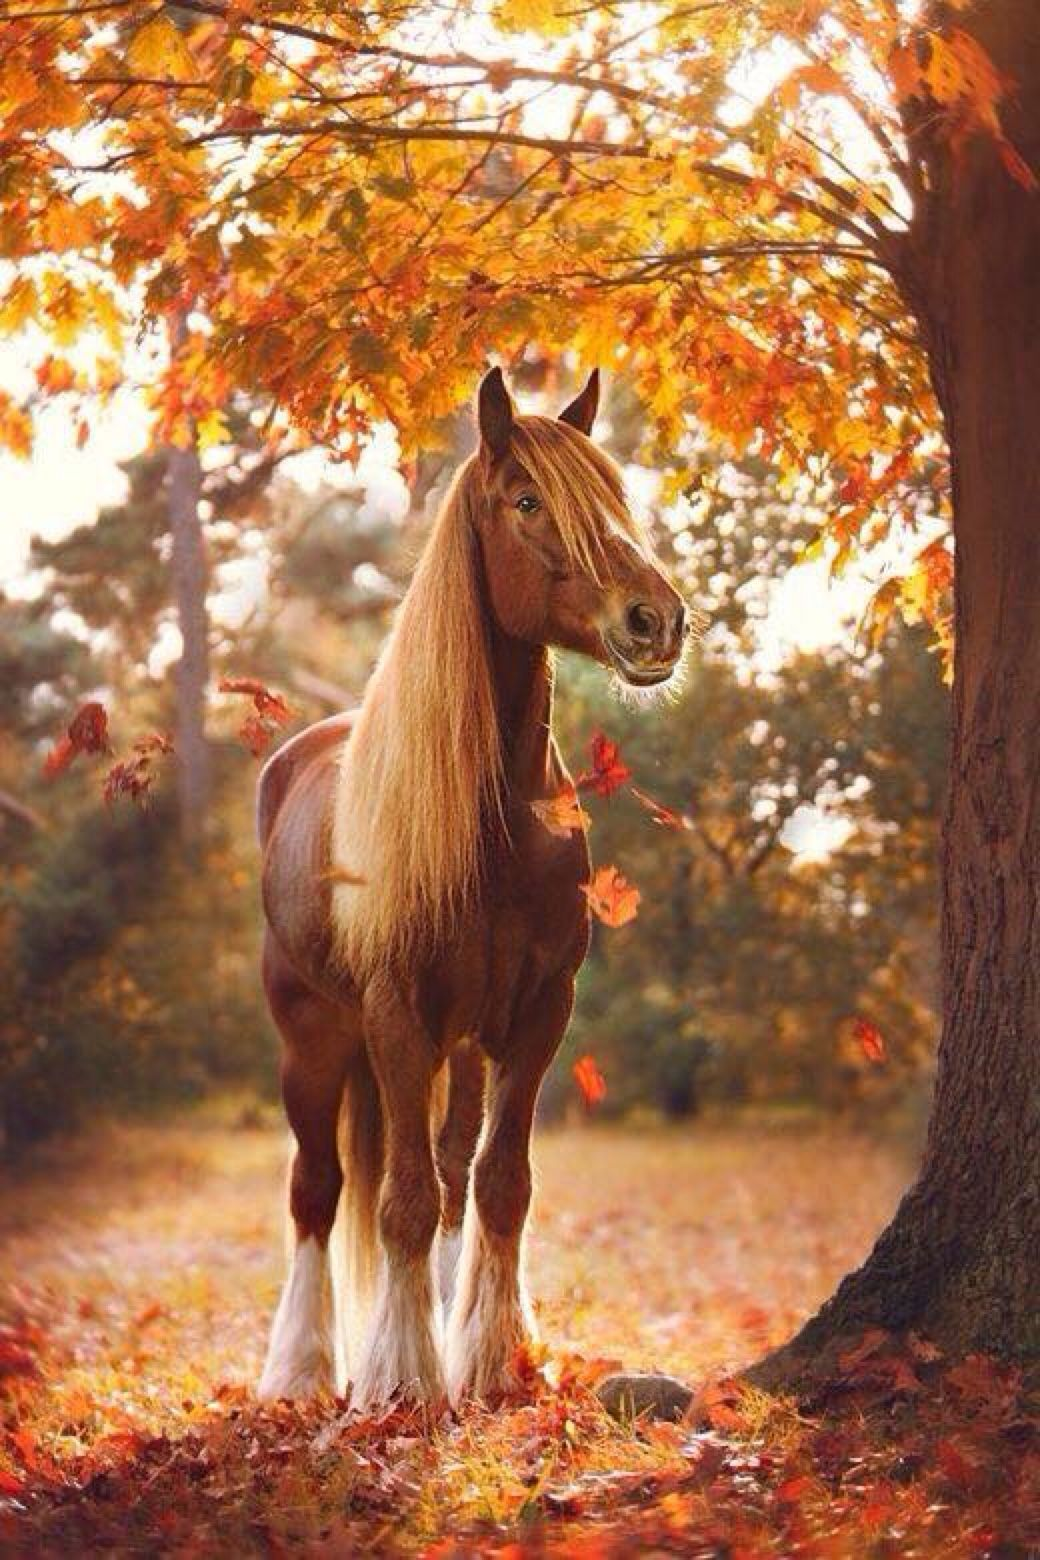 Beautiful Autumn Sunset: A Horse In Autumn .... Leaves Falling, Tree, Hest, Beauty